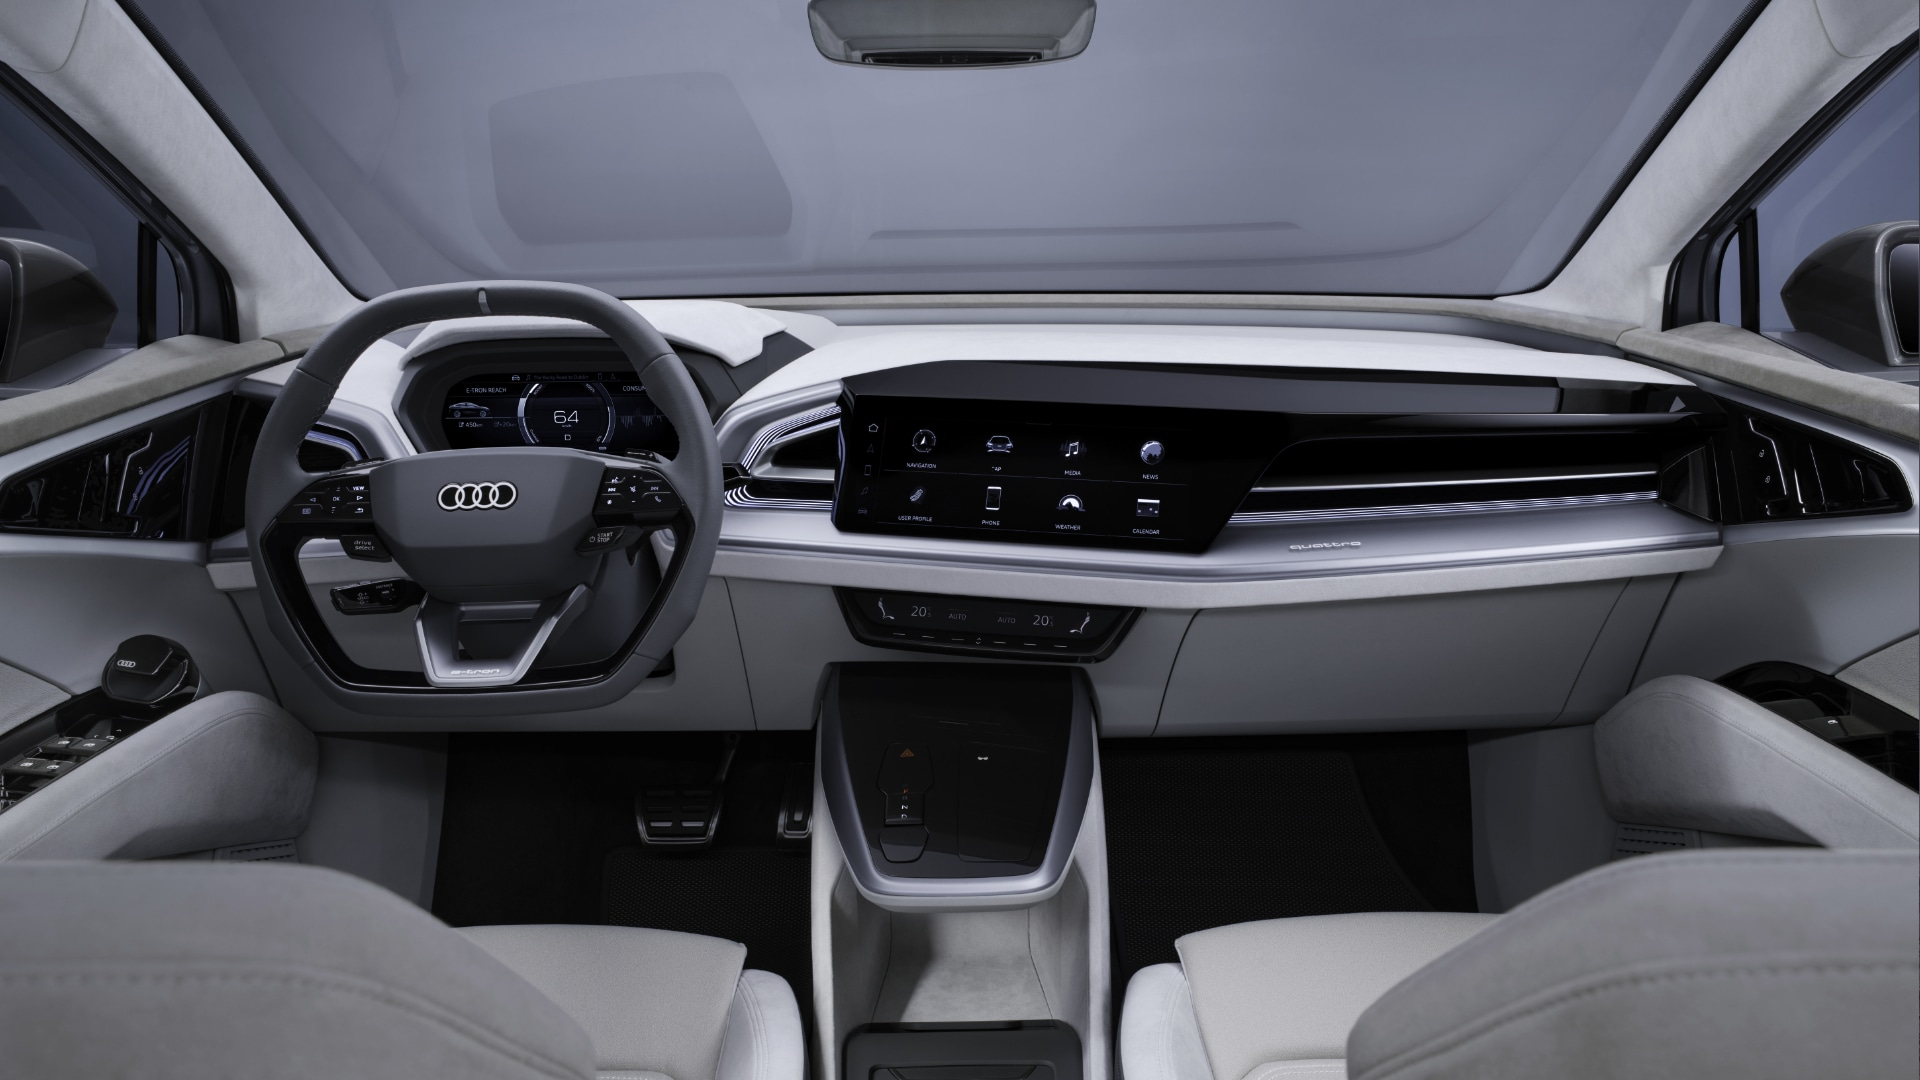 An Addition To Our Future Electric Cars Meet The Latest Audi Concept Car Audi Com